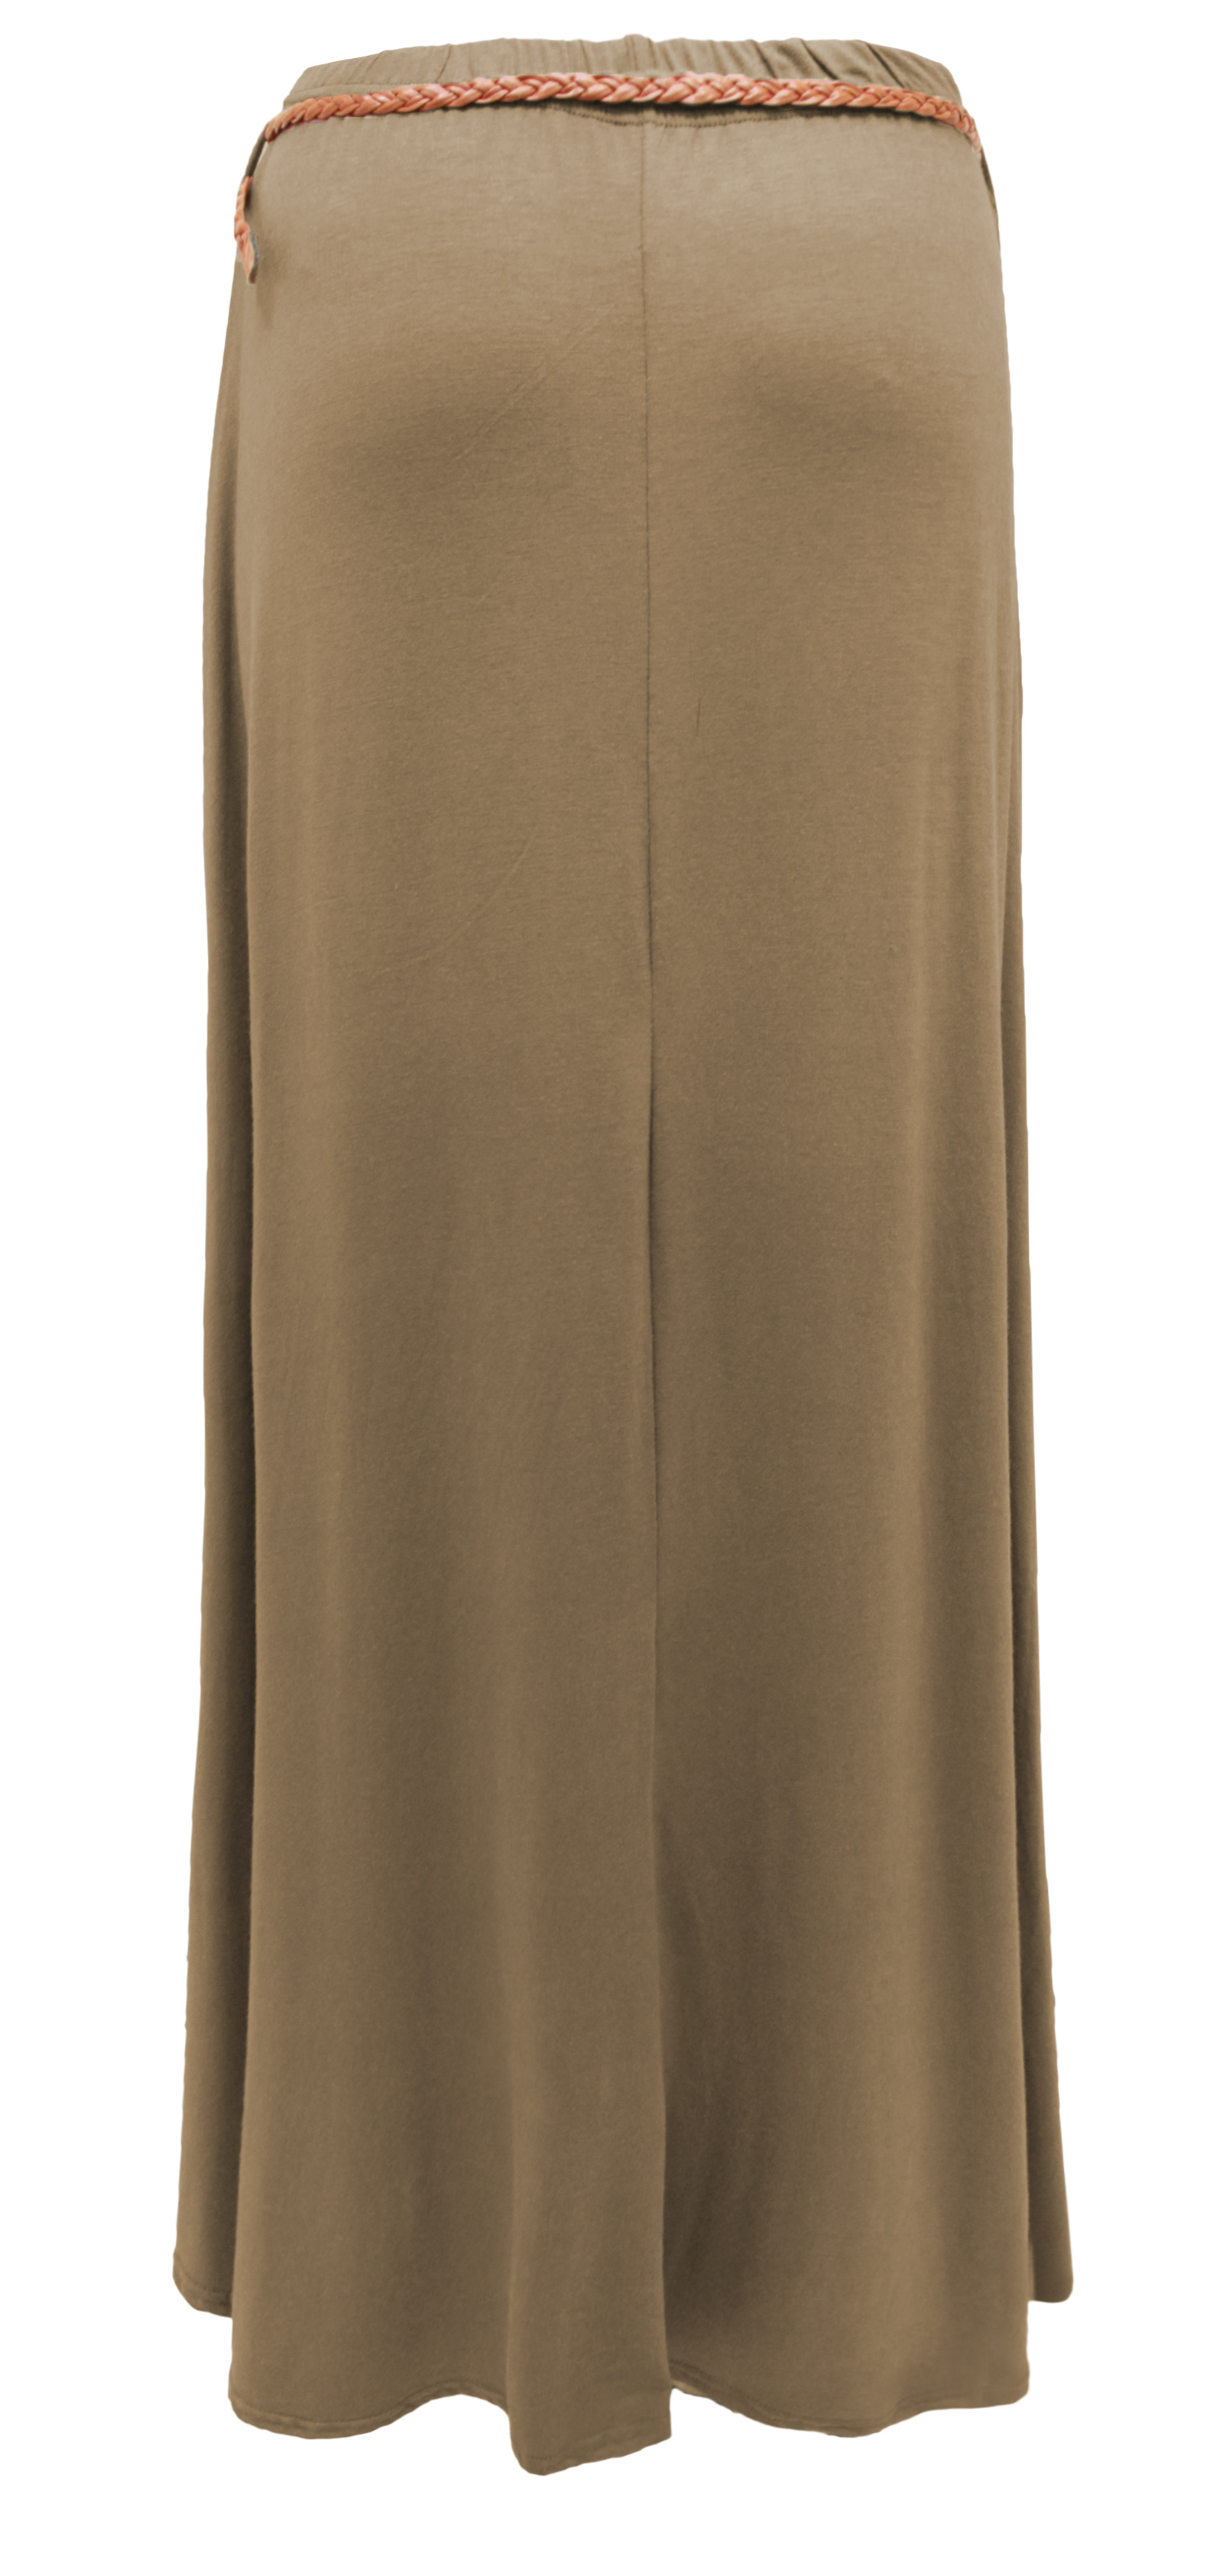 LADIES-GYPSY-MAXI-LONG-SKIRT-WOMANS-JERSEY-ELASTICATED-BELTED-LADIES-SKIRT-8-14